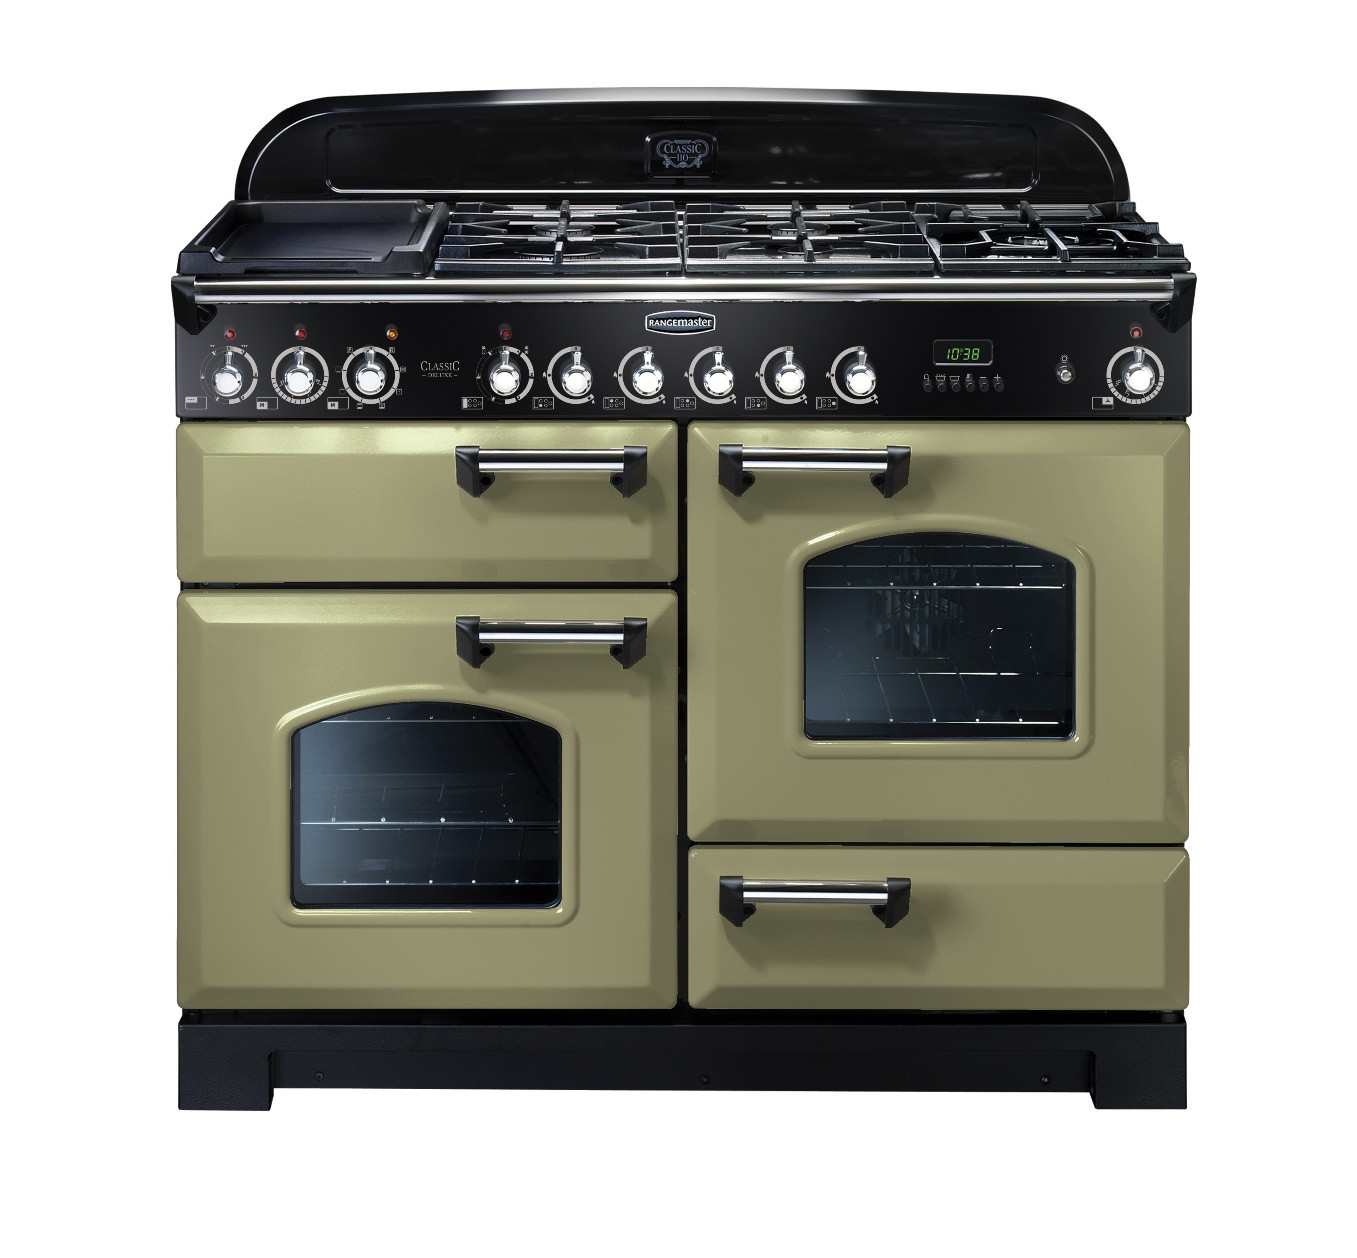 Rangemaster Classic Deluxe 110 Dual Fuel Range Cooker Olive Green/Chrome Trim CDL110DFFOG/C 100930